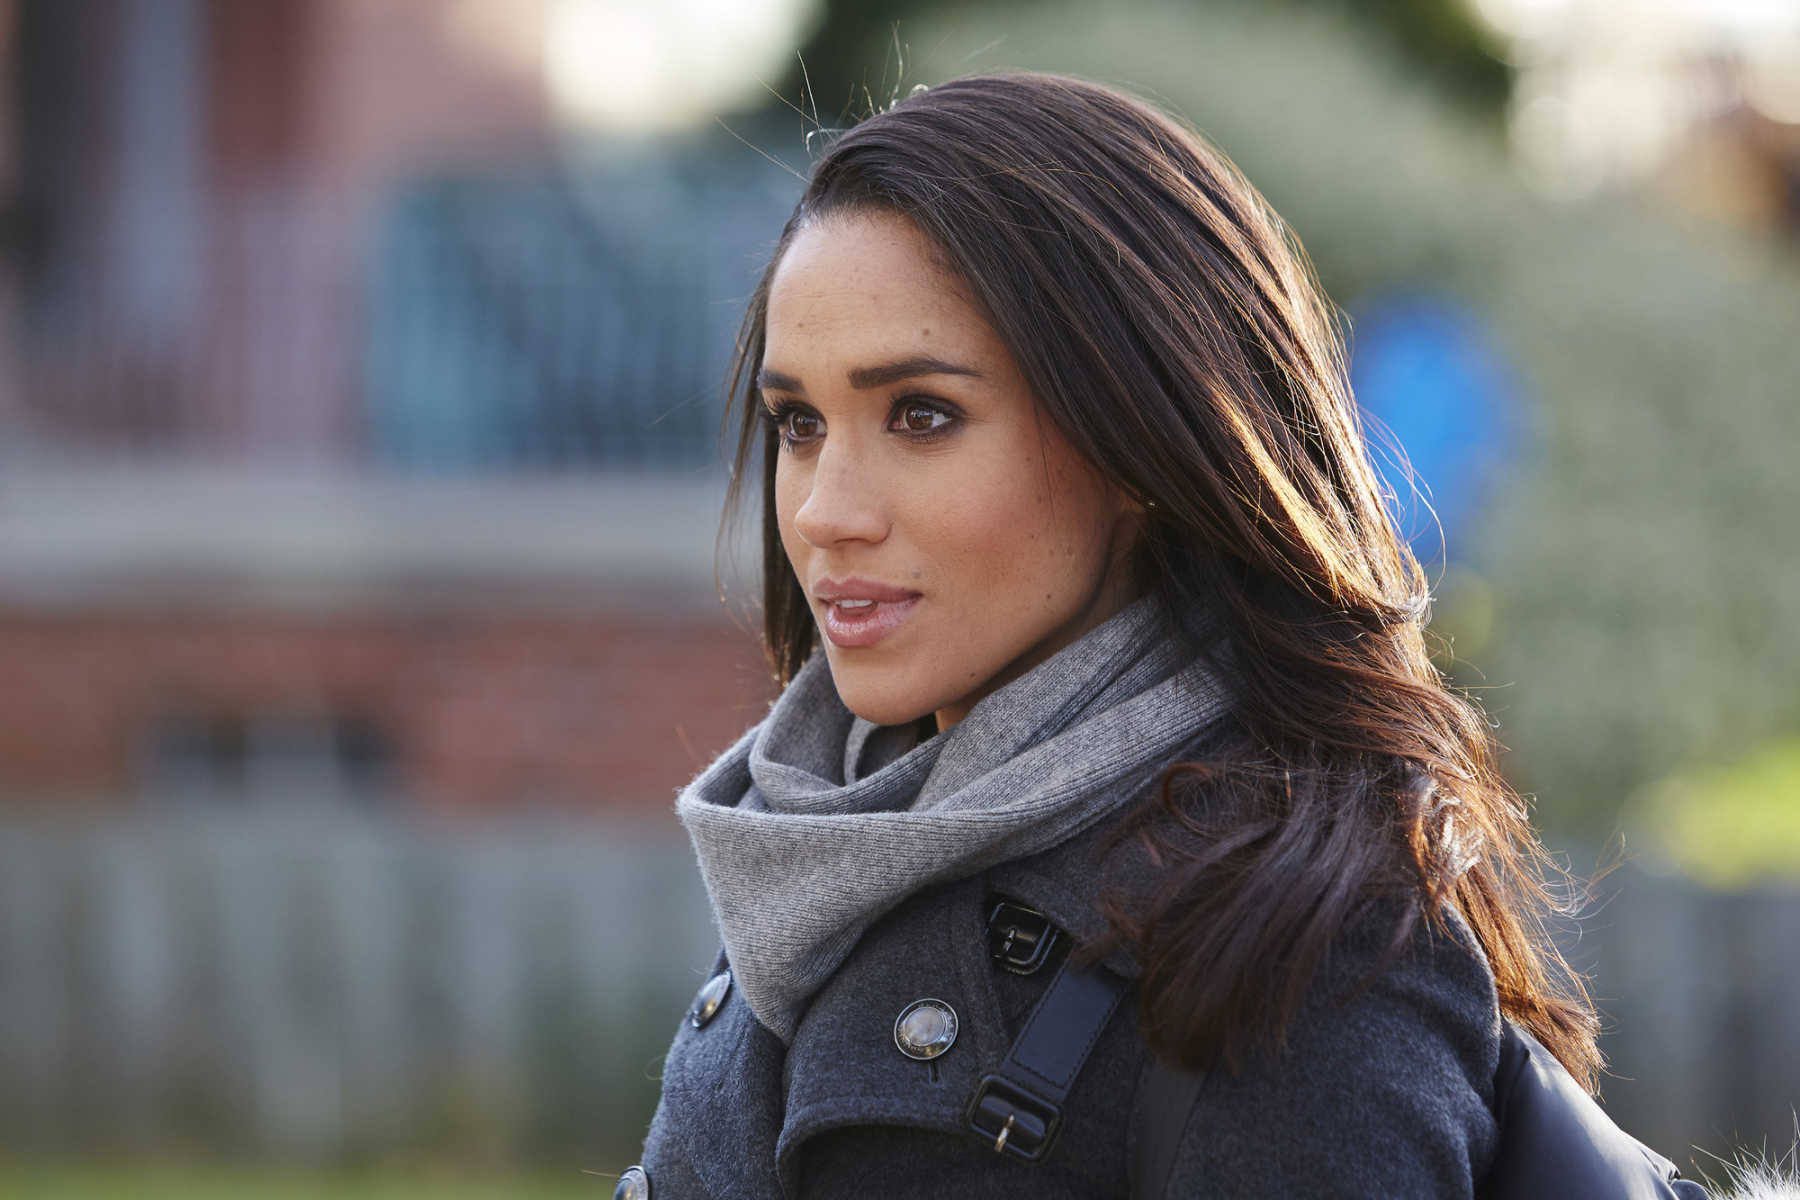 The Best Meghan Markle Suits Character Job